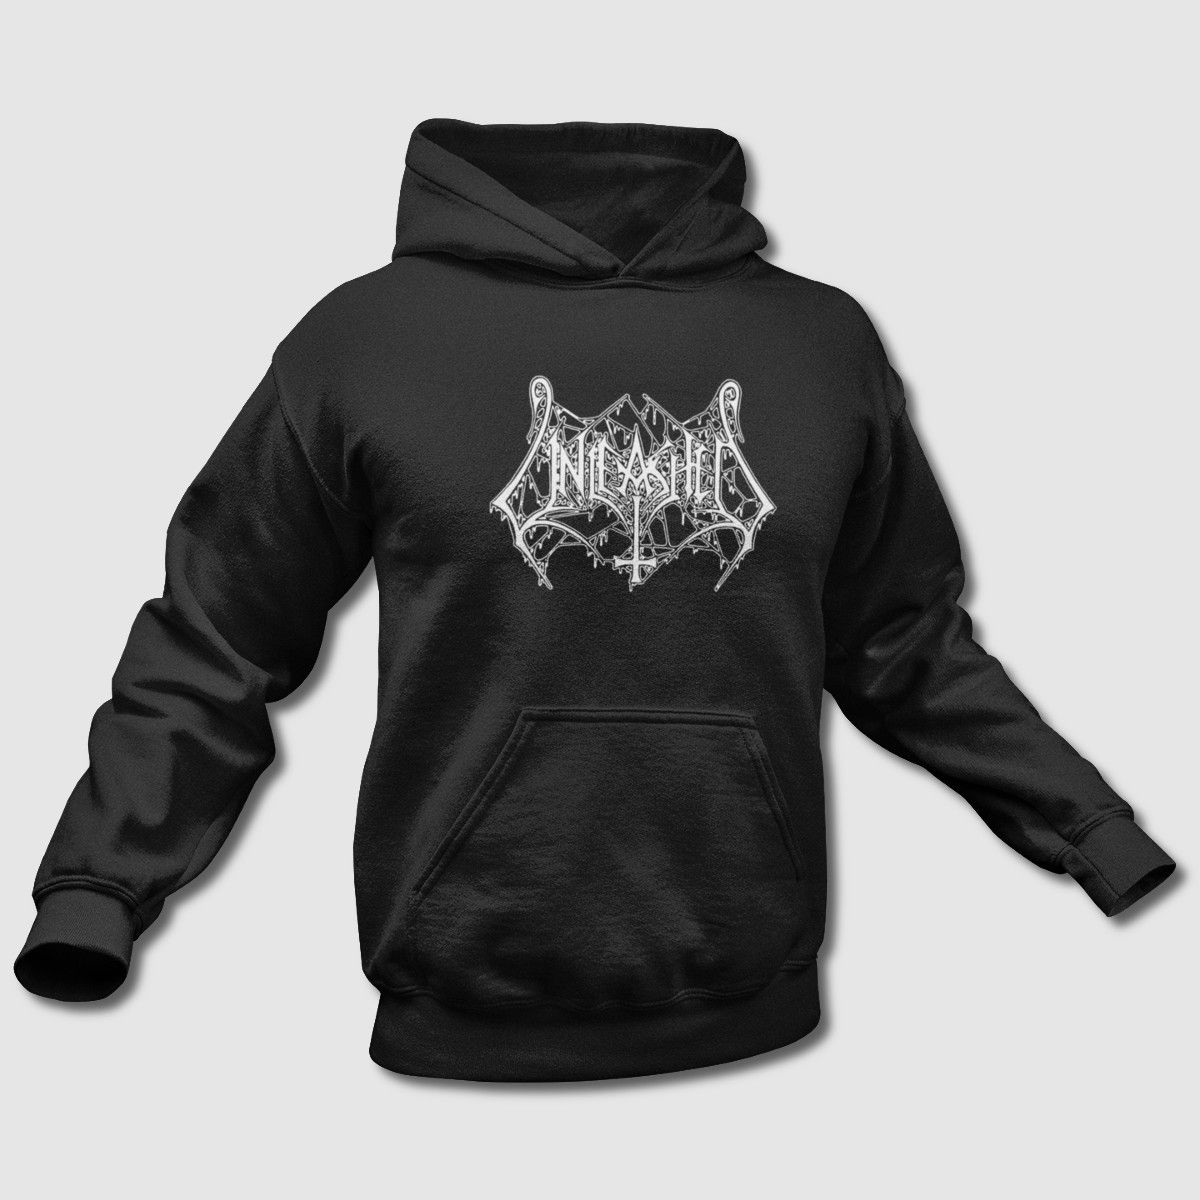 Unleashed Hoodie, Unleashed Logo Kapuzenpullover